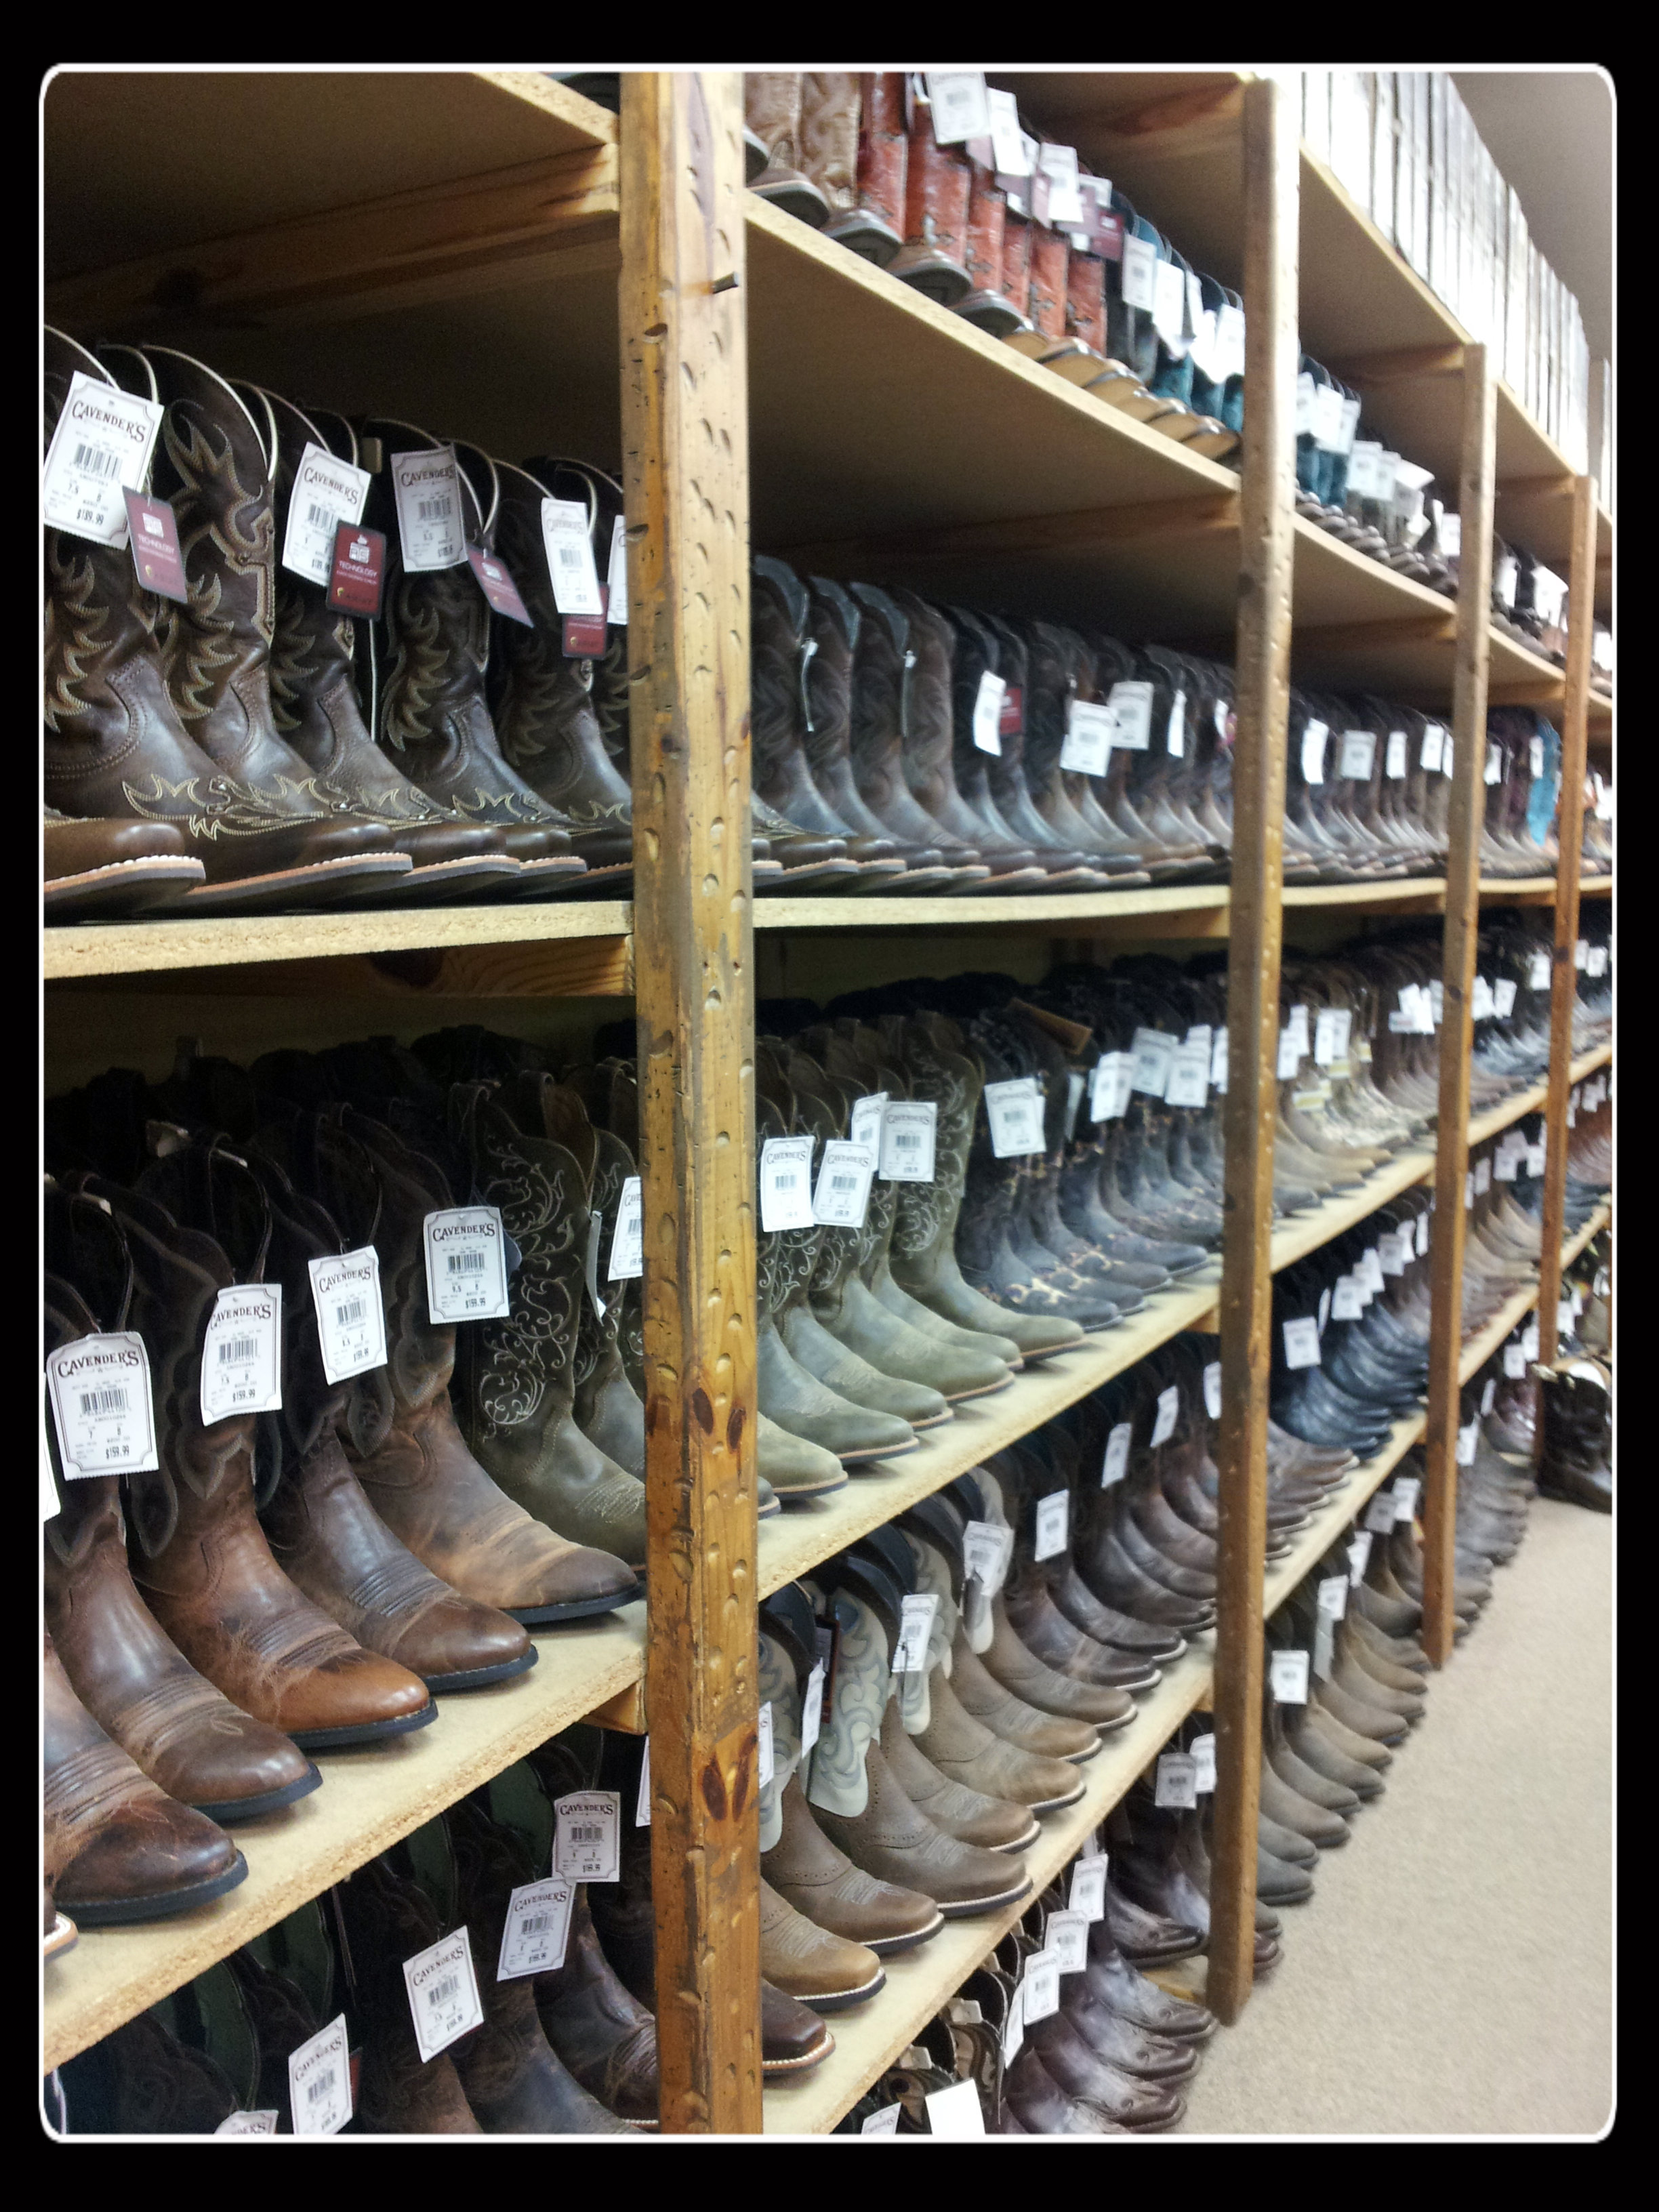 A boatload of boots.